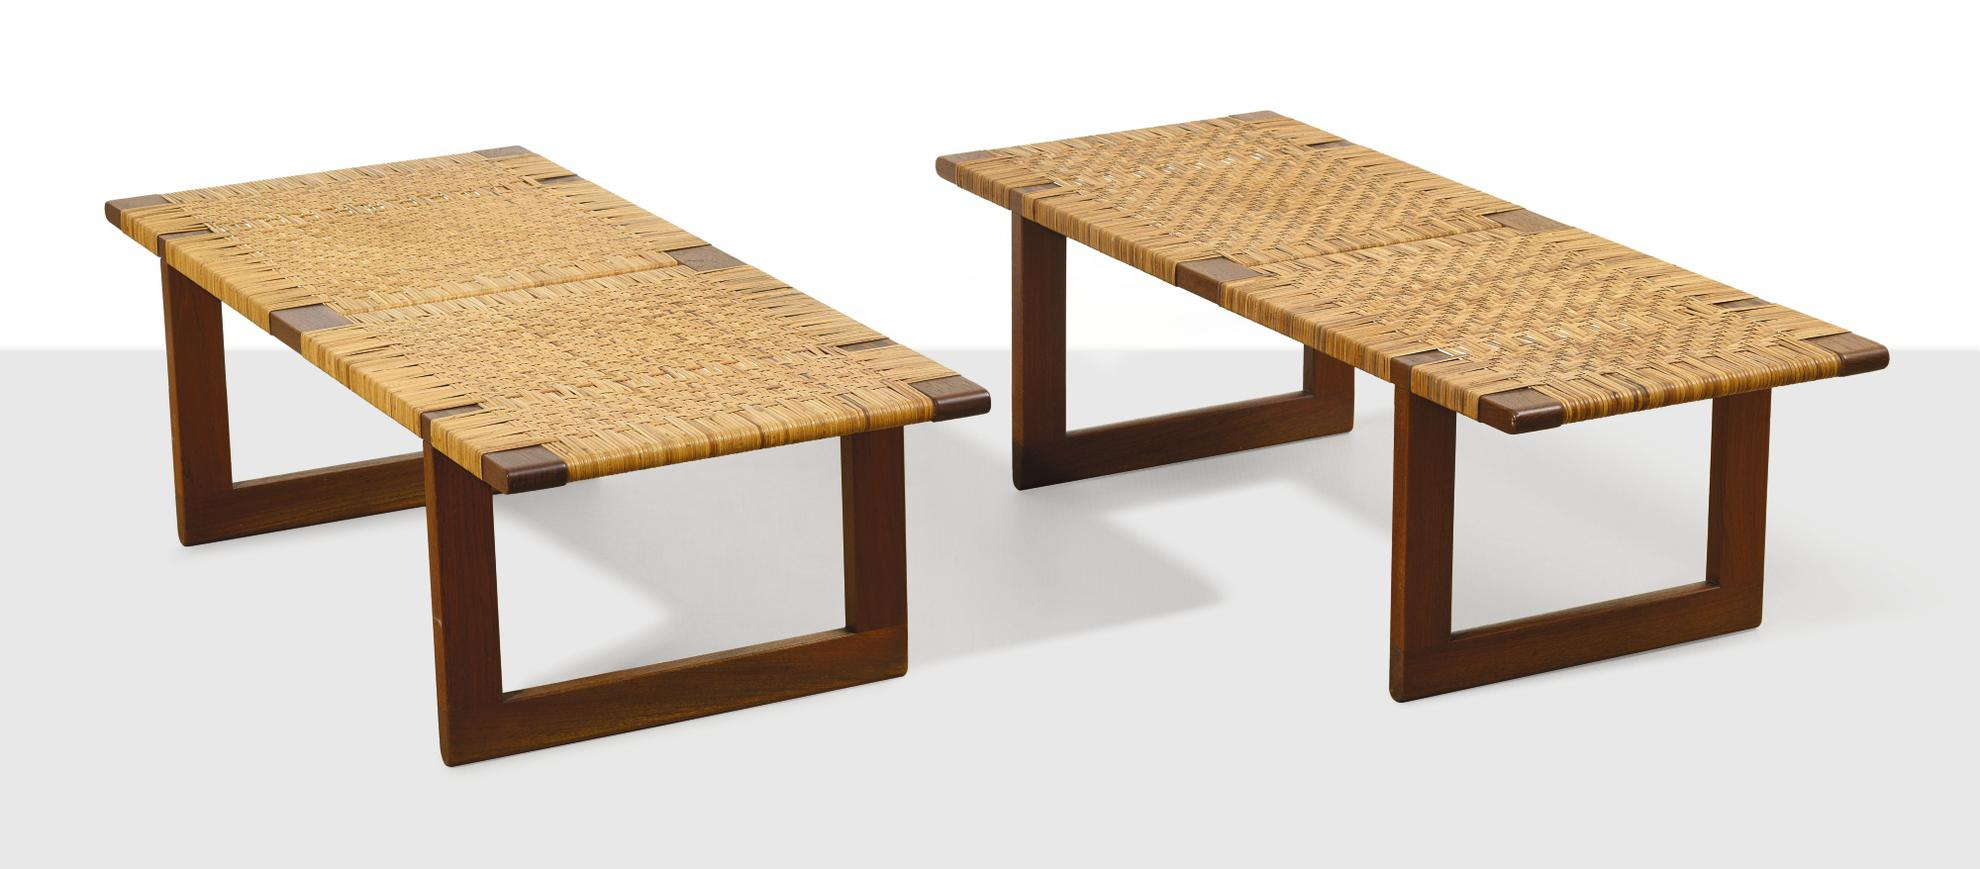 Borge Mogensen - Large And Small Bench (Two Works)-1969